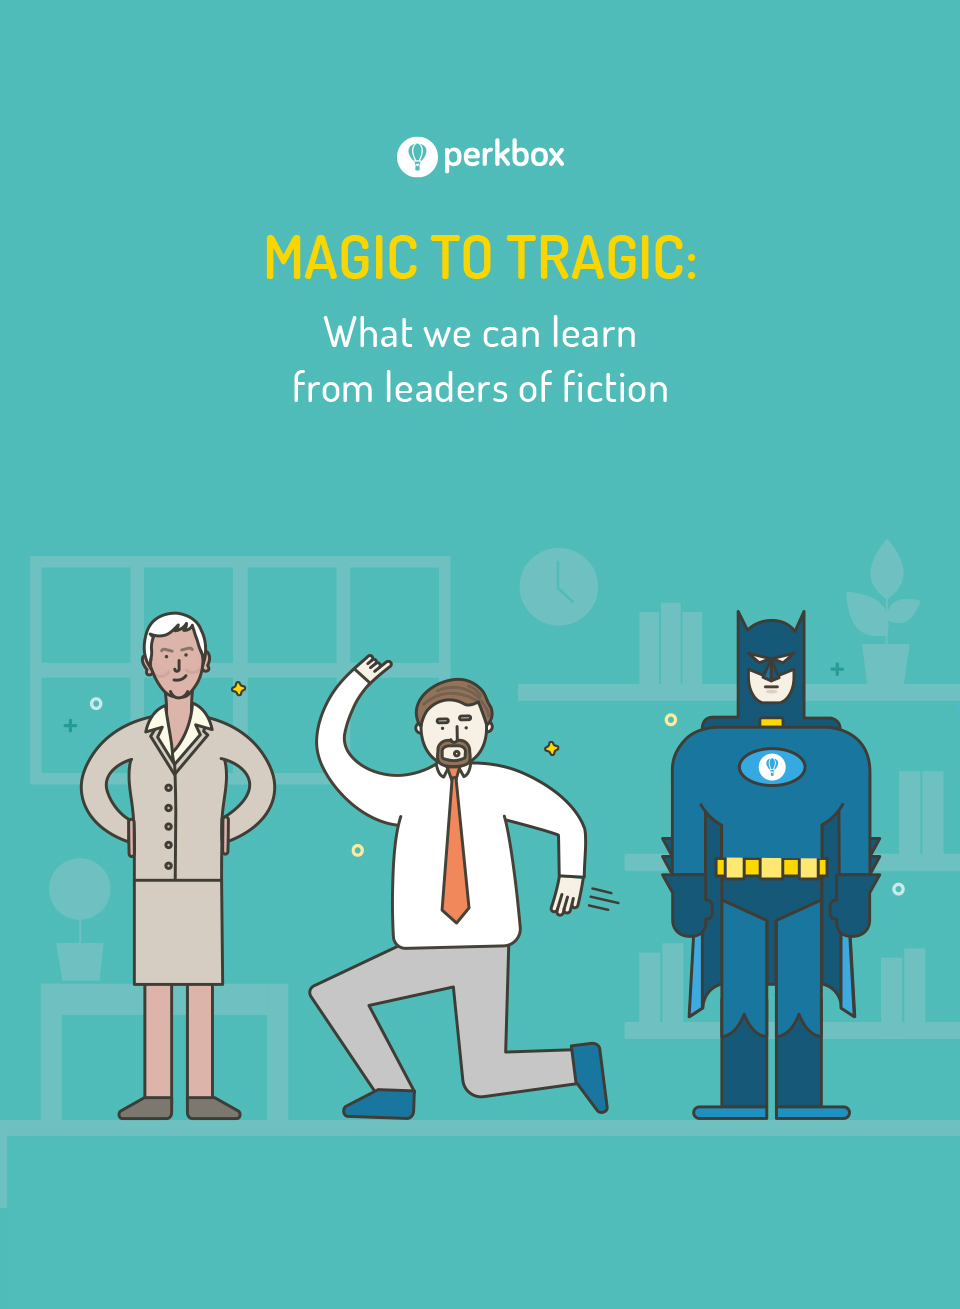 Magic to tragic: What we can learn from fictional leaders